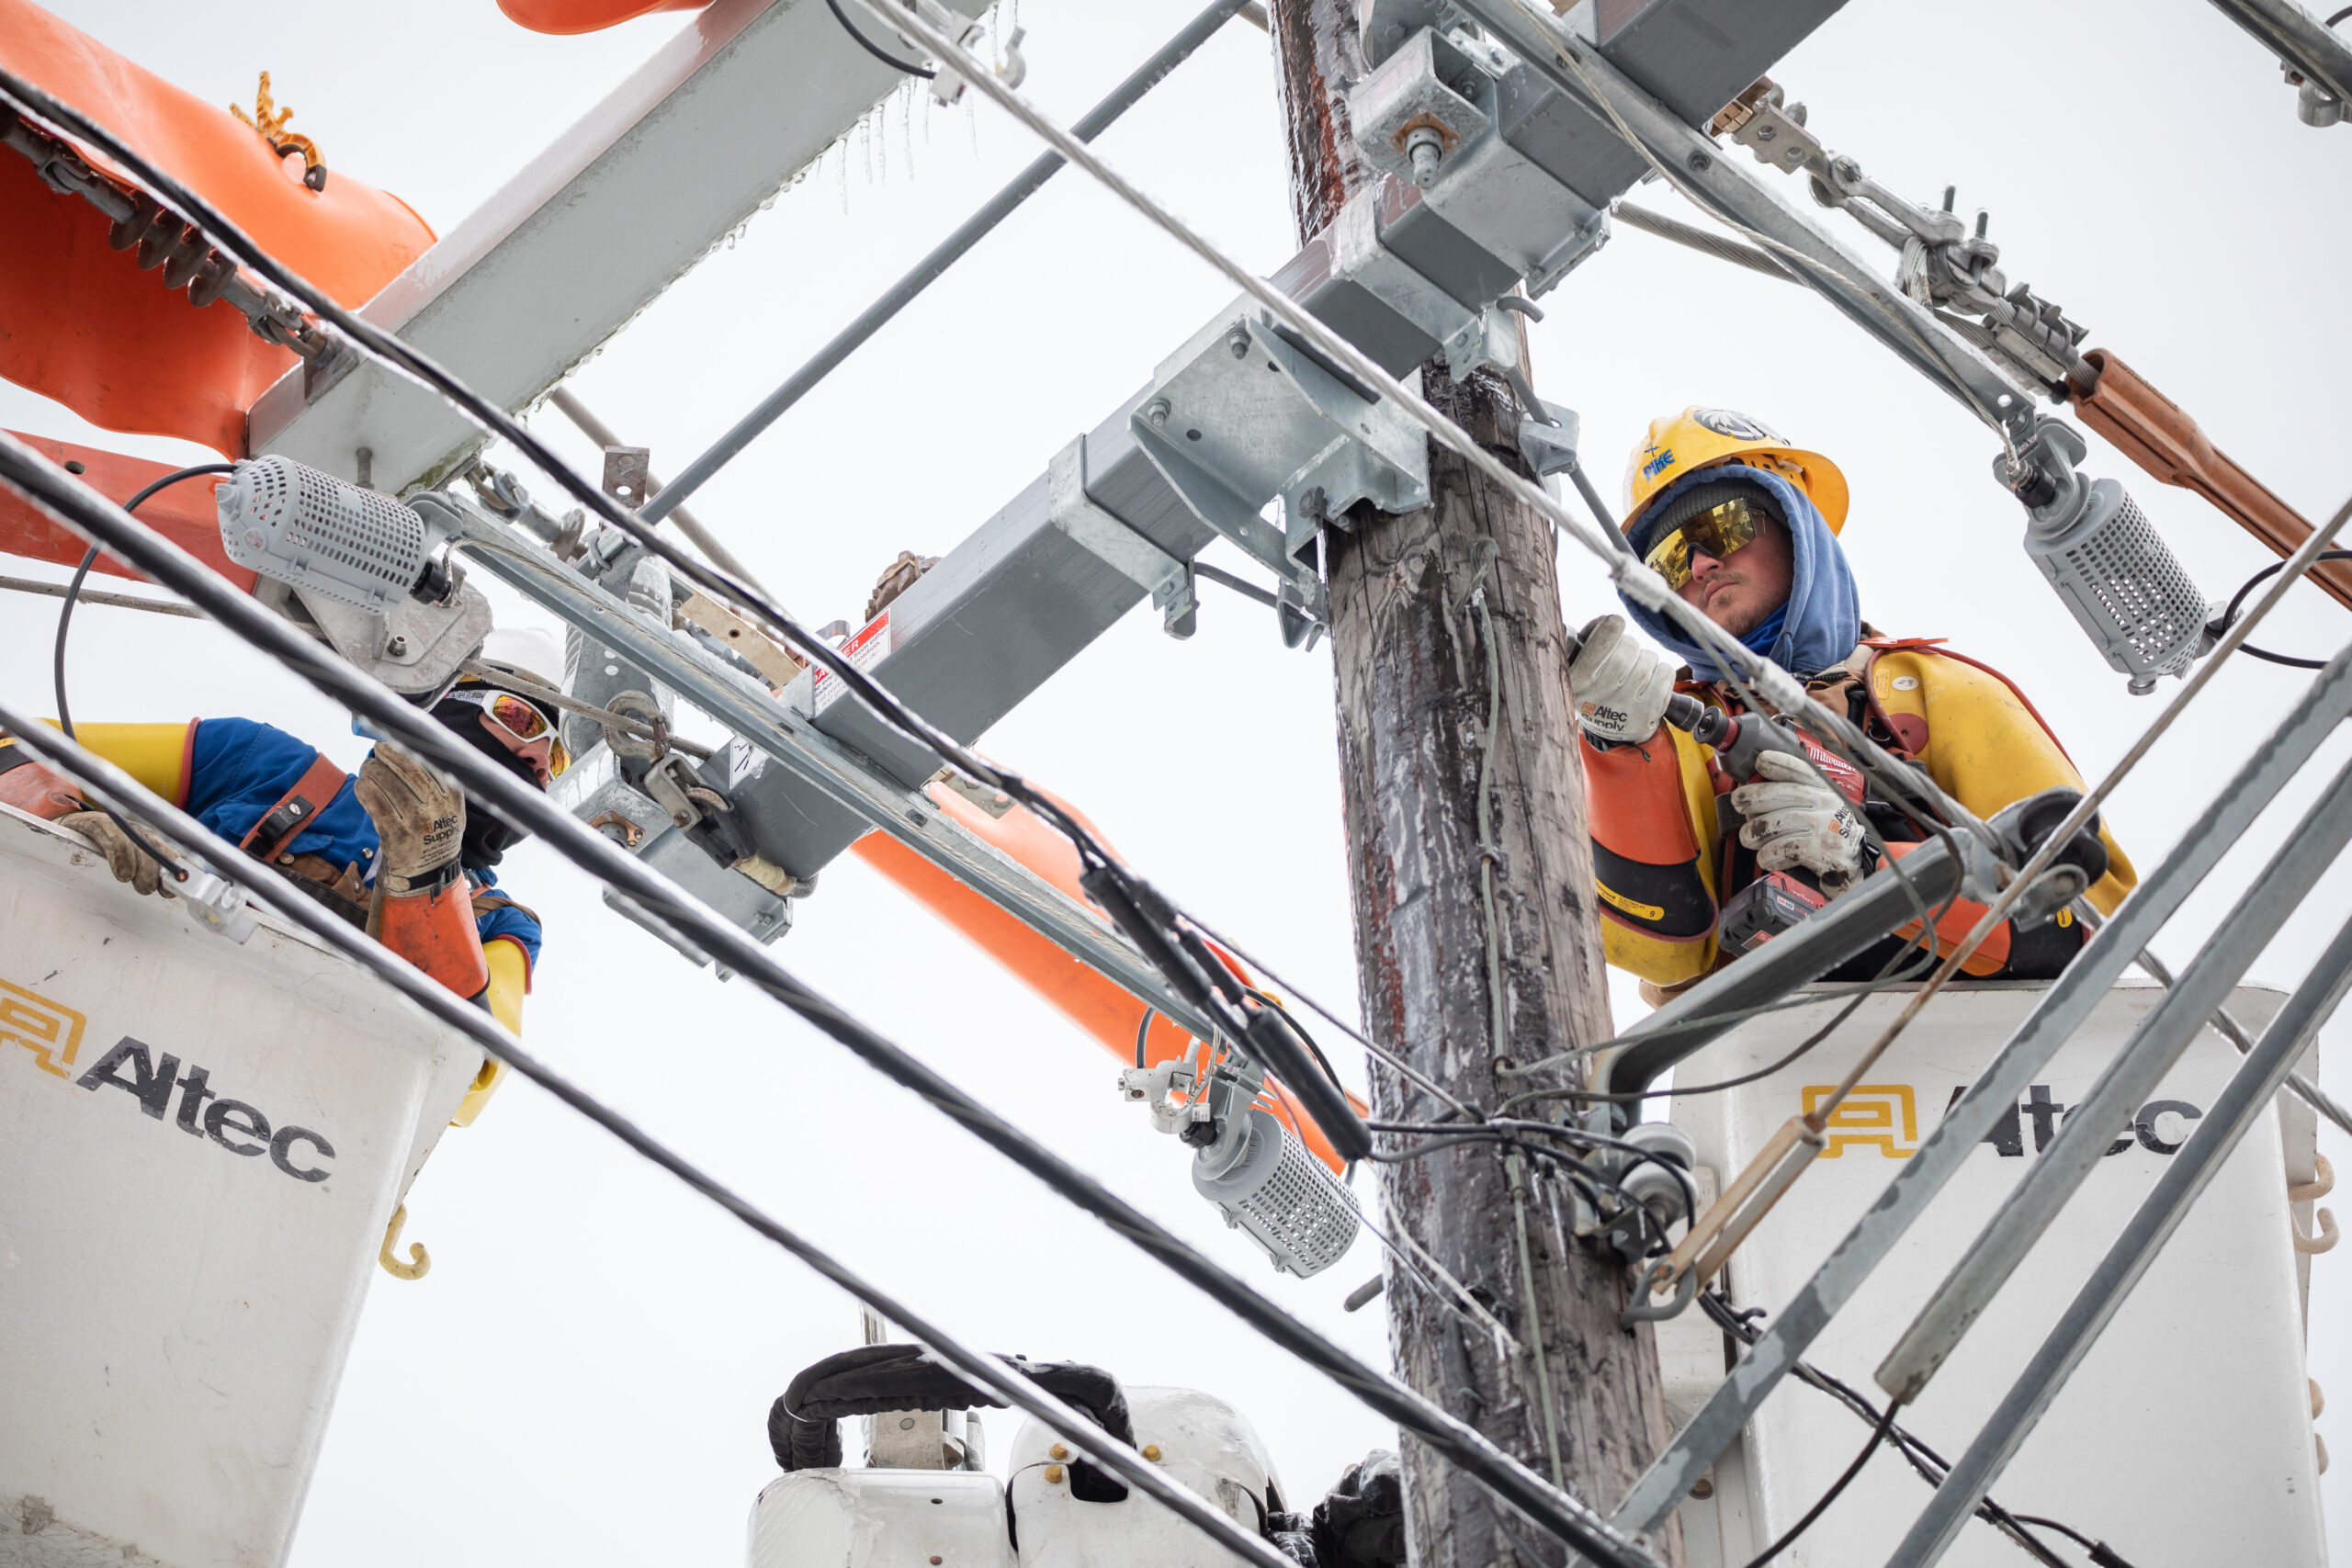 Workers repair a power line in Austin, Texas, U.S., on Thursday, Feb. 18, 2021. Credit: Thomas Ryan Allison/Bloomberg via Getty Images